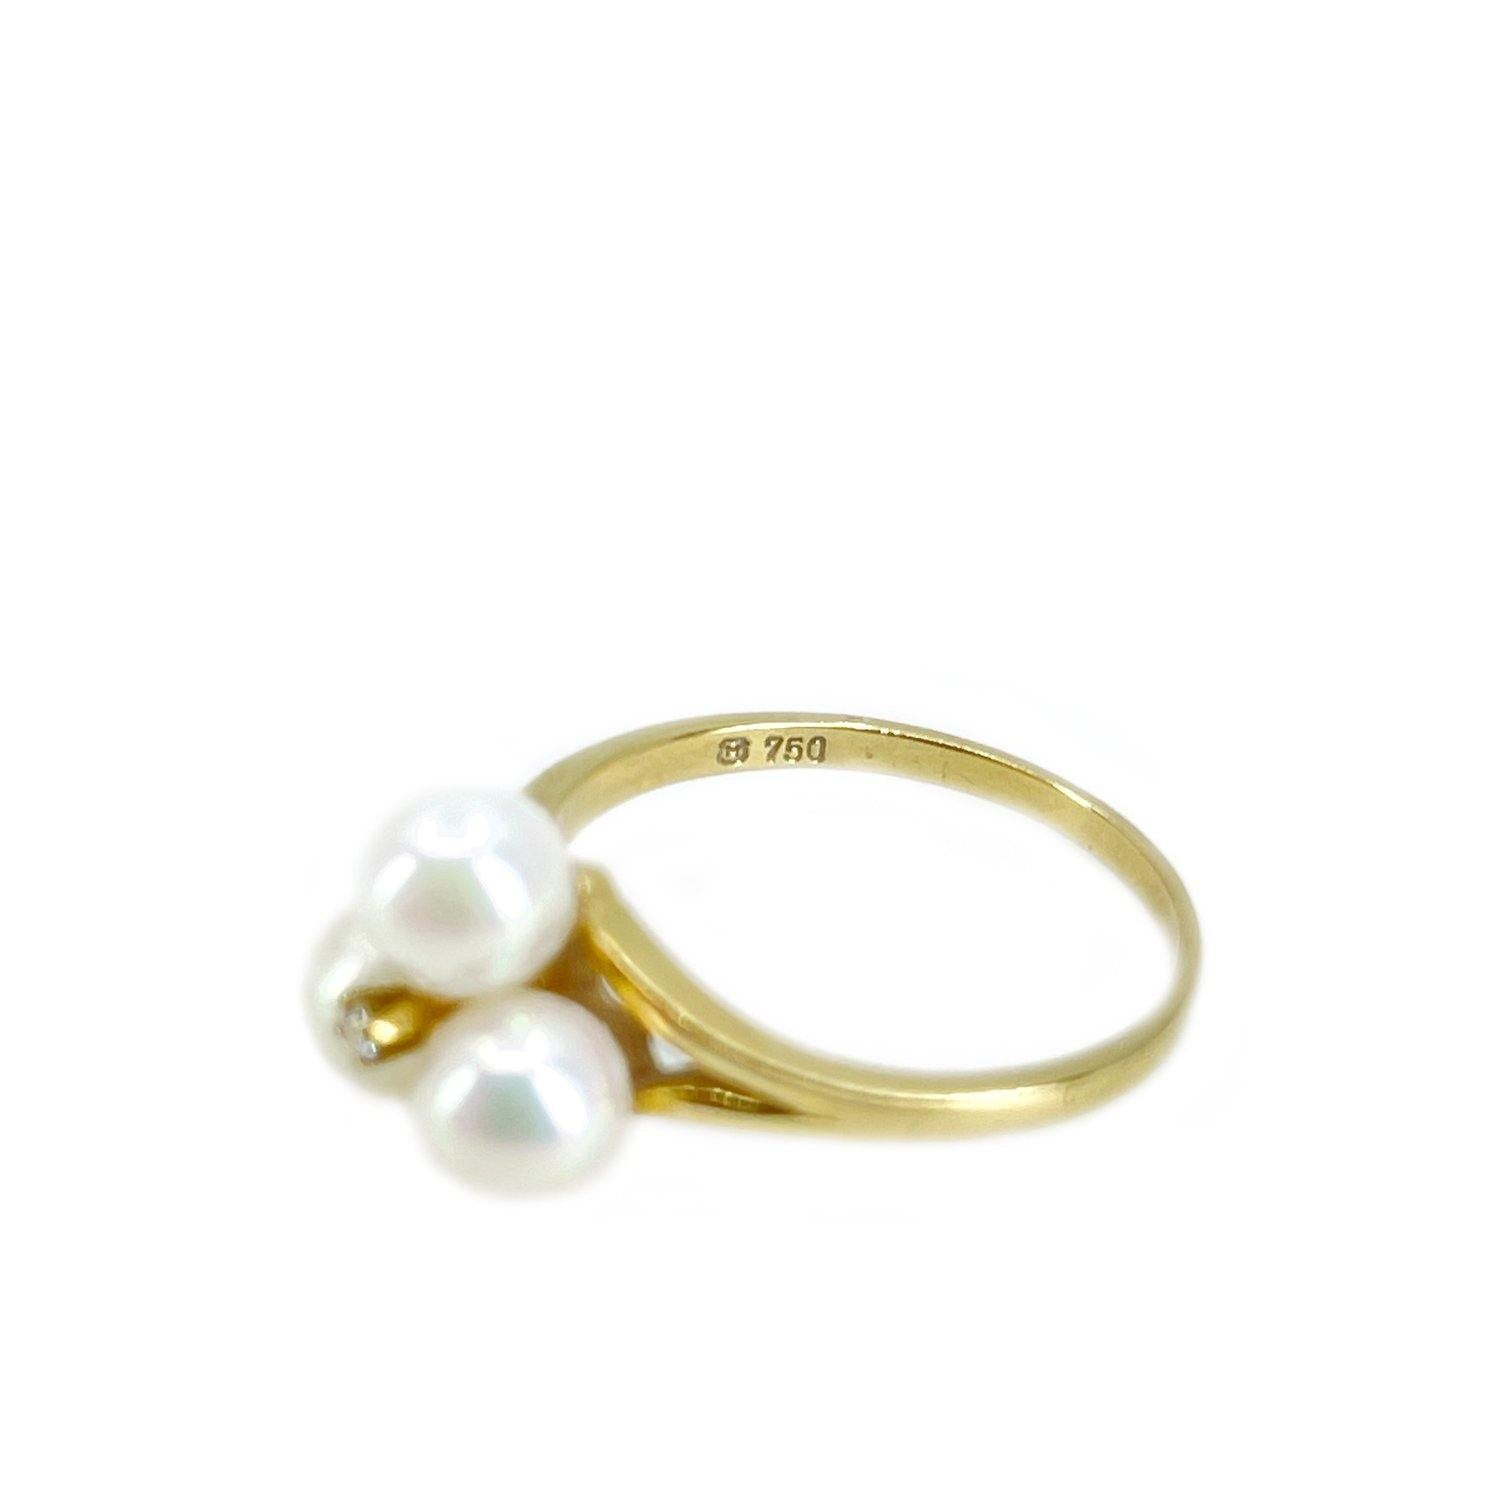 Mikimoto Diamond Cluster Japanese Saltwater Akoya Cultured Pearl Ring- 18K Yellow Gold Sz 6 1/2